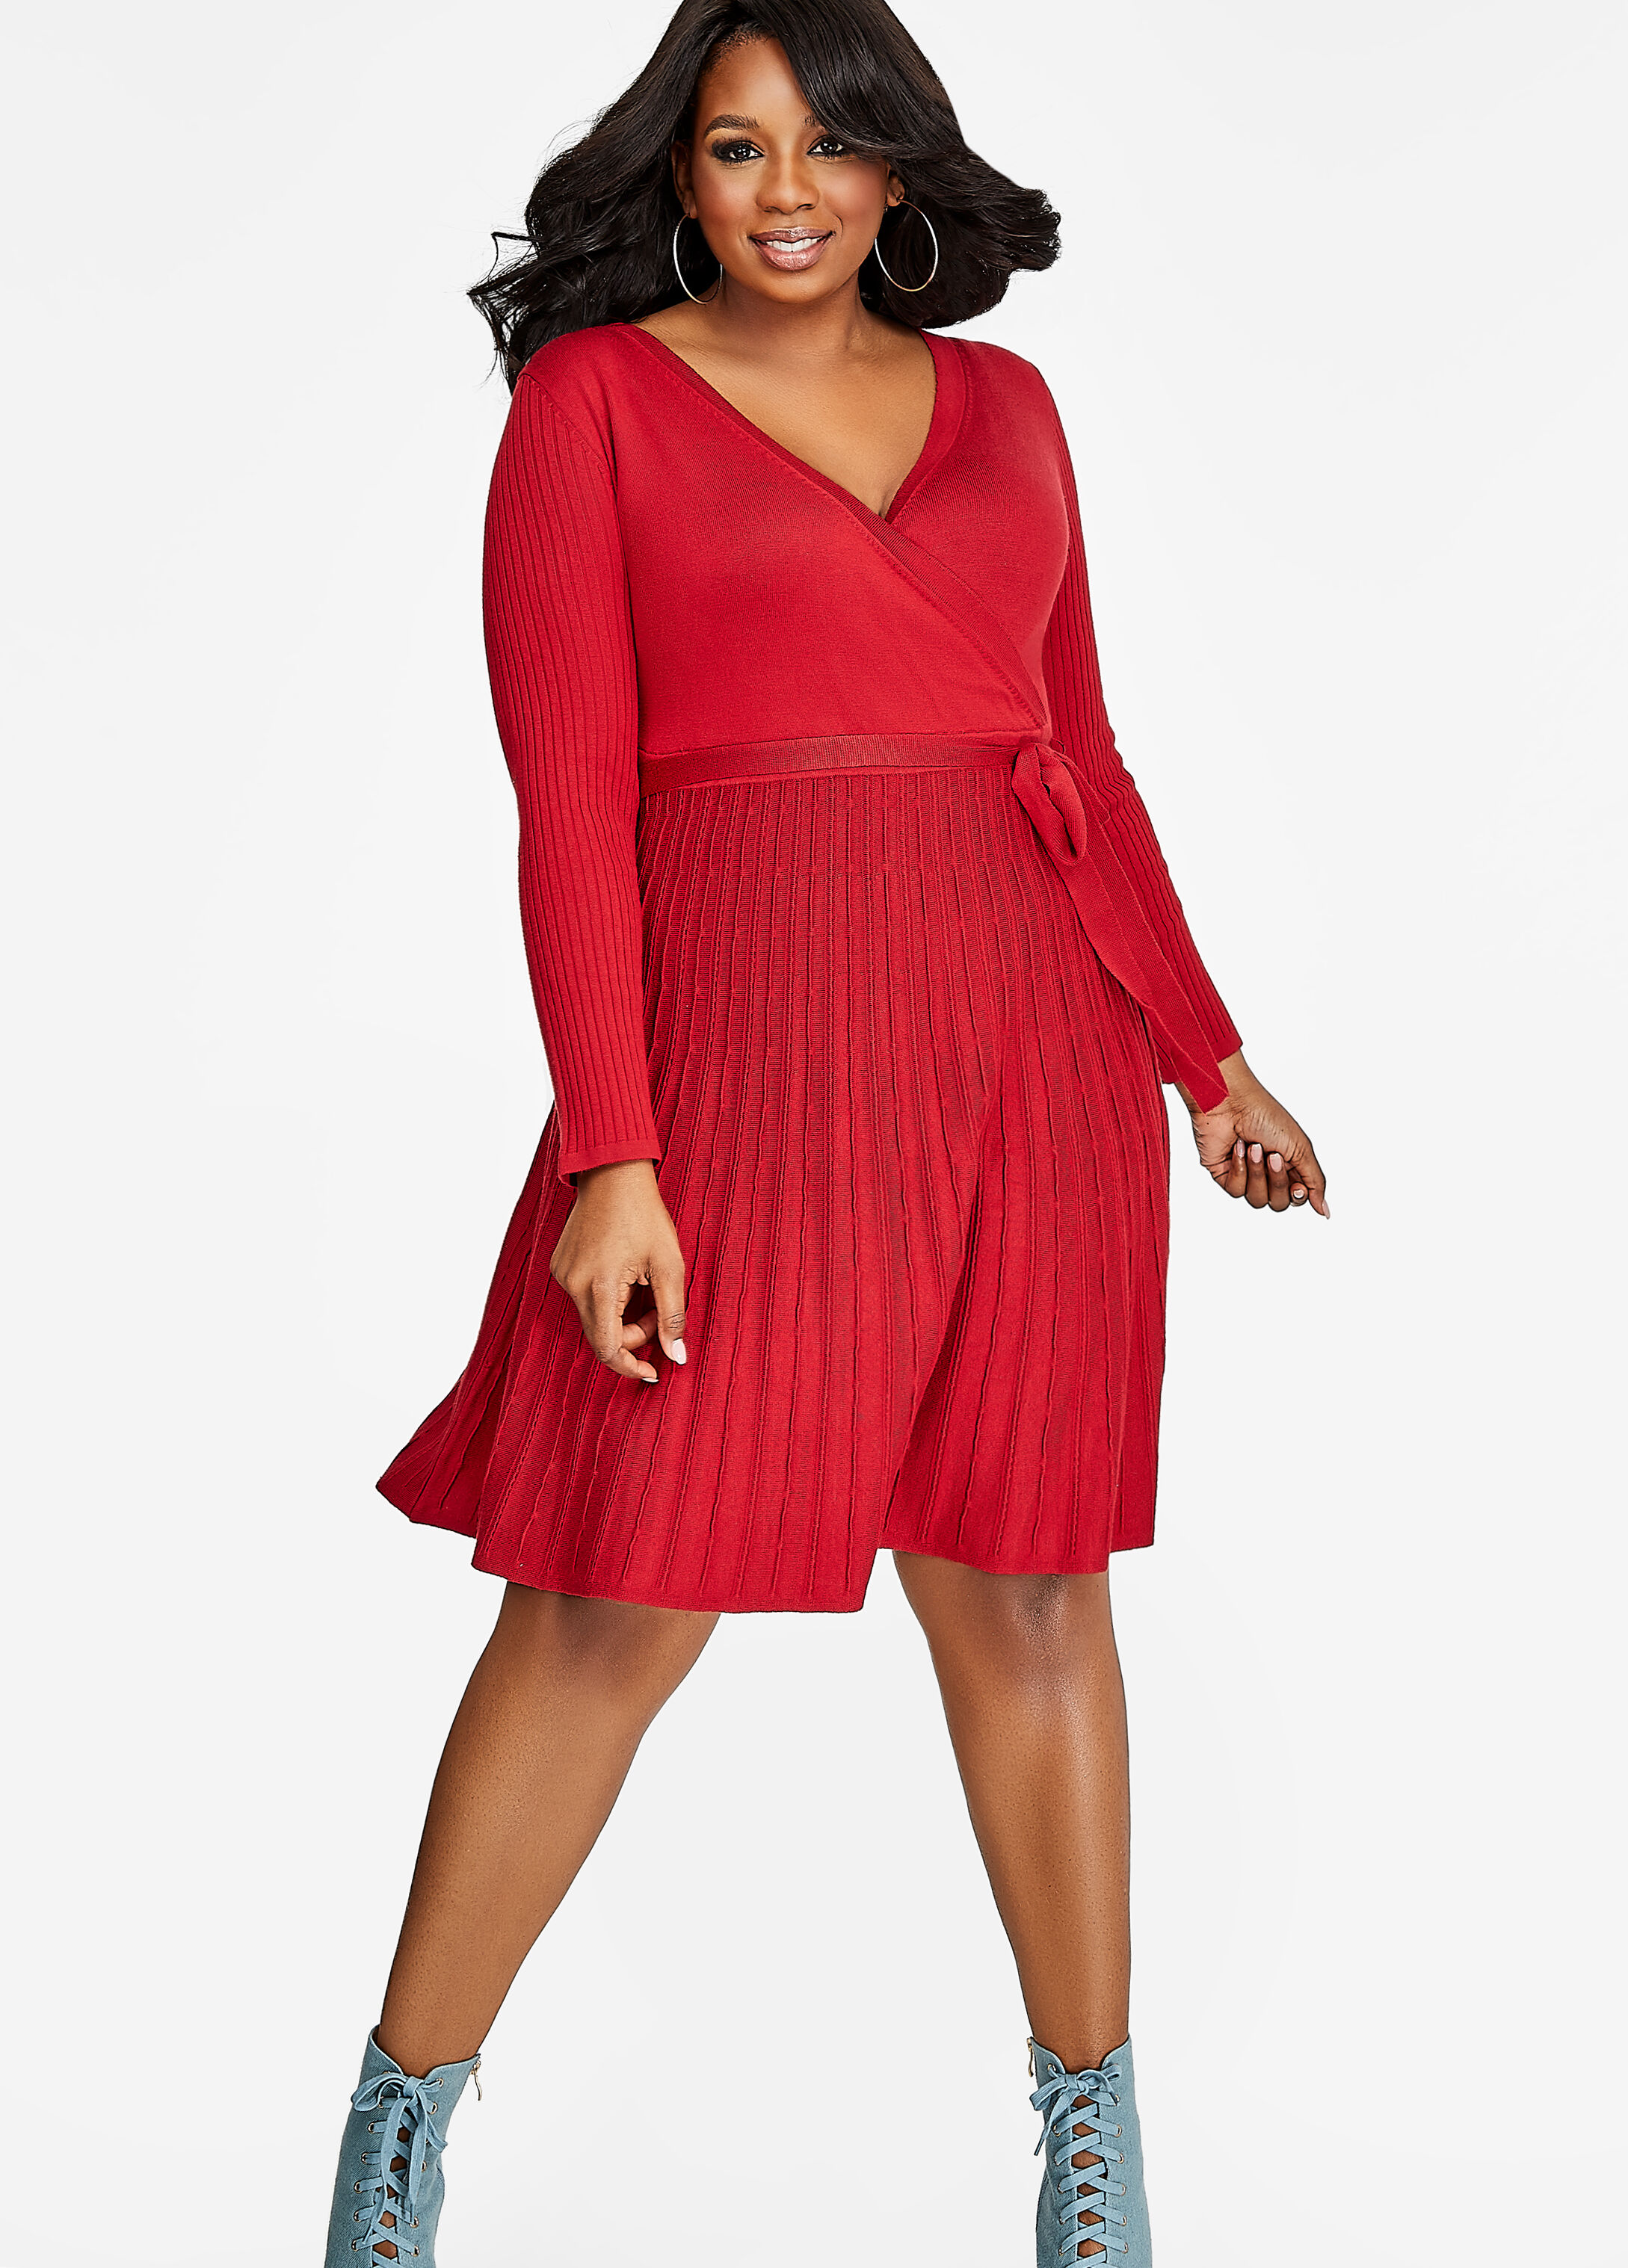 The key to selling your plus size clothing on Instagram is to create a separate page for your shop, and then use a lot of plus size-related hashtags to direct people to your page.